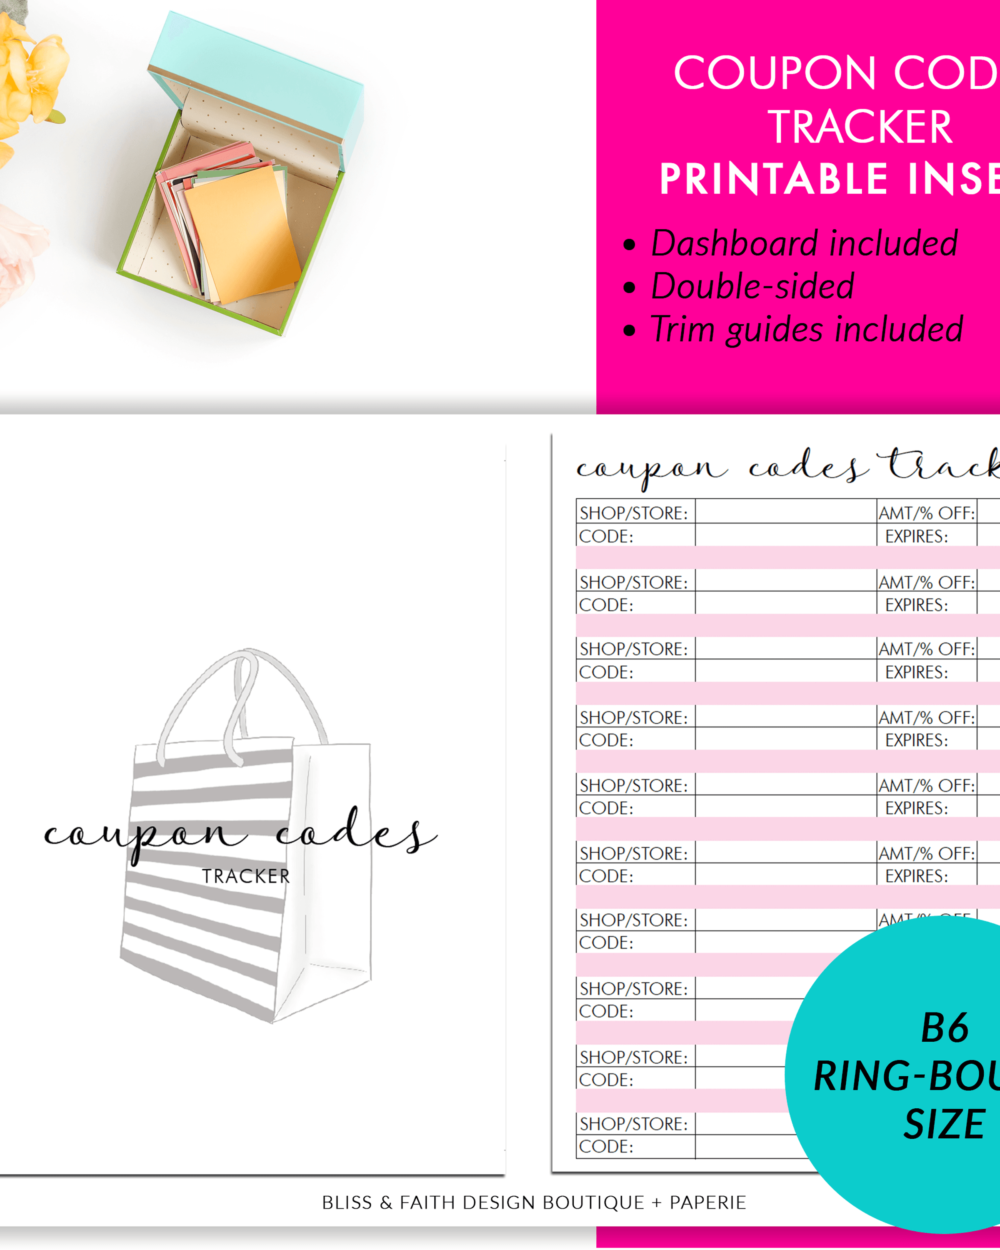 B6 Rings Coupon Codes Tracker Printable Planner Insert | BlissandFaith.com